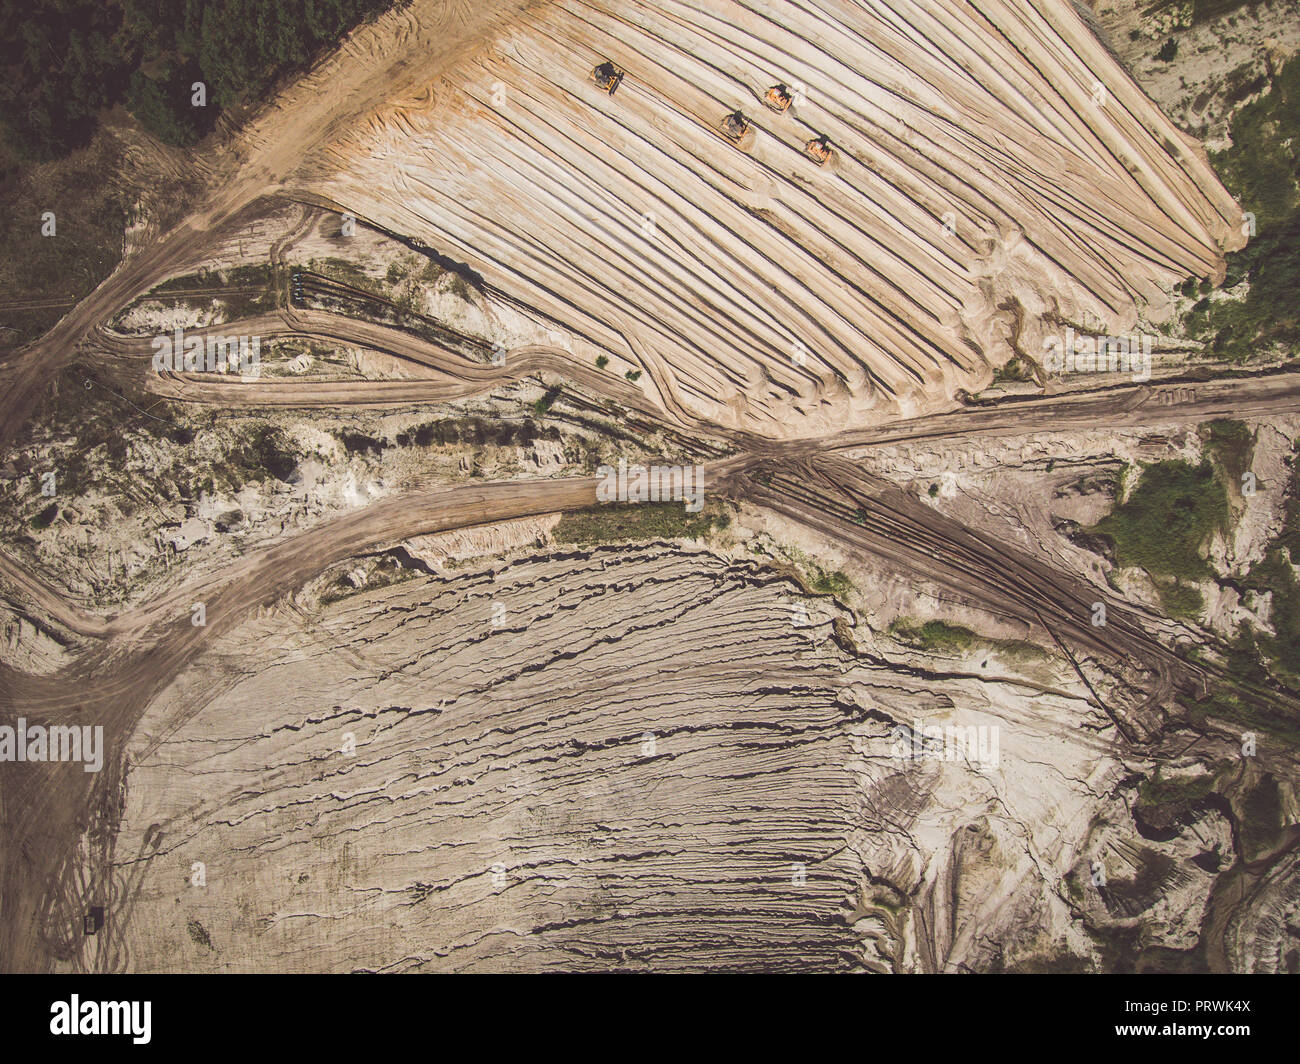 Abstract patterns of the earth around the opencast mine - Stock Image